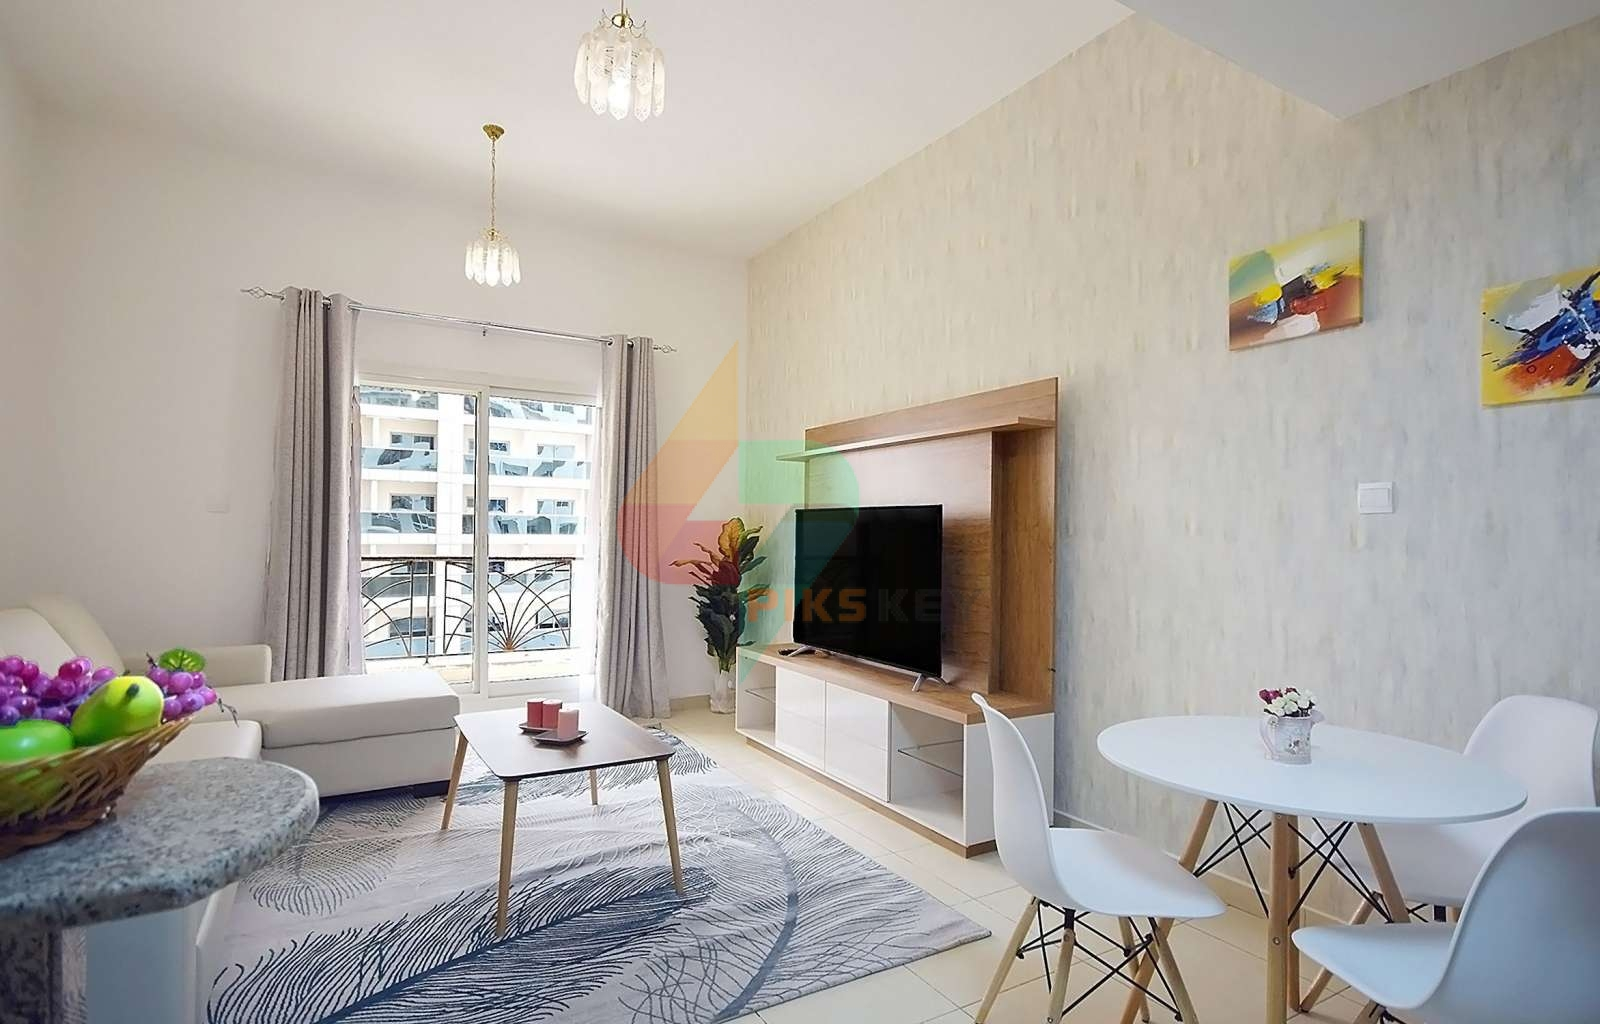 The Optimal One bedroom Apartment in Cordoba Palace ...